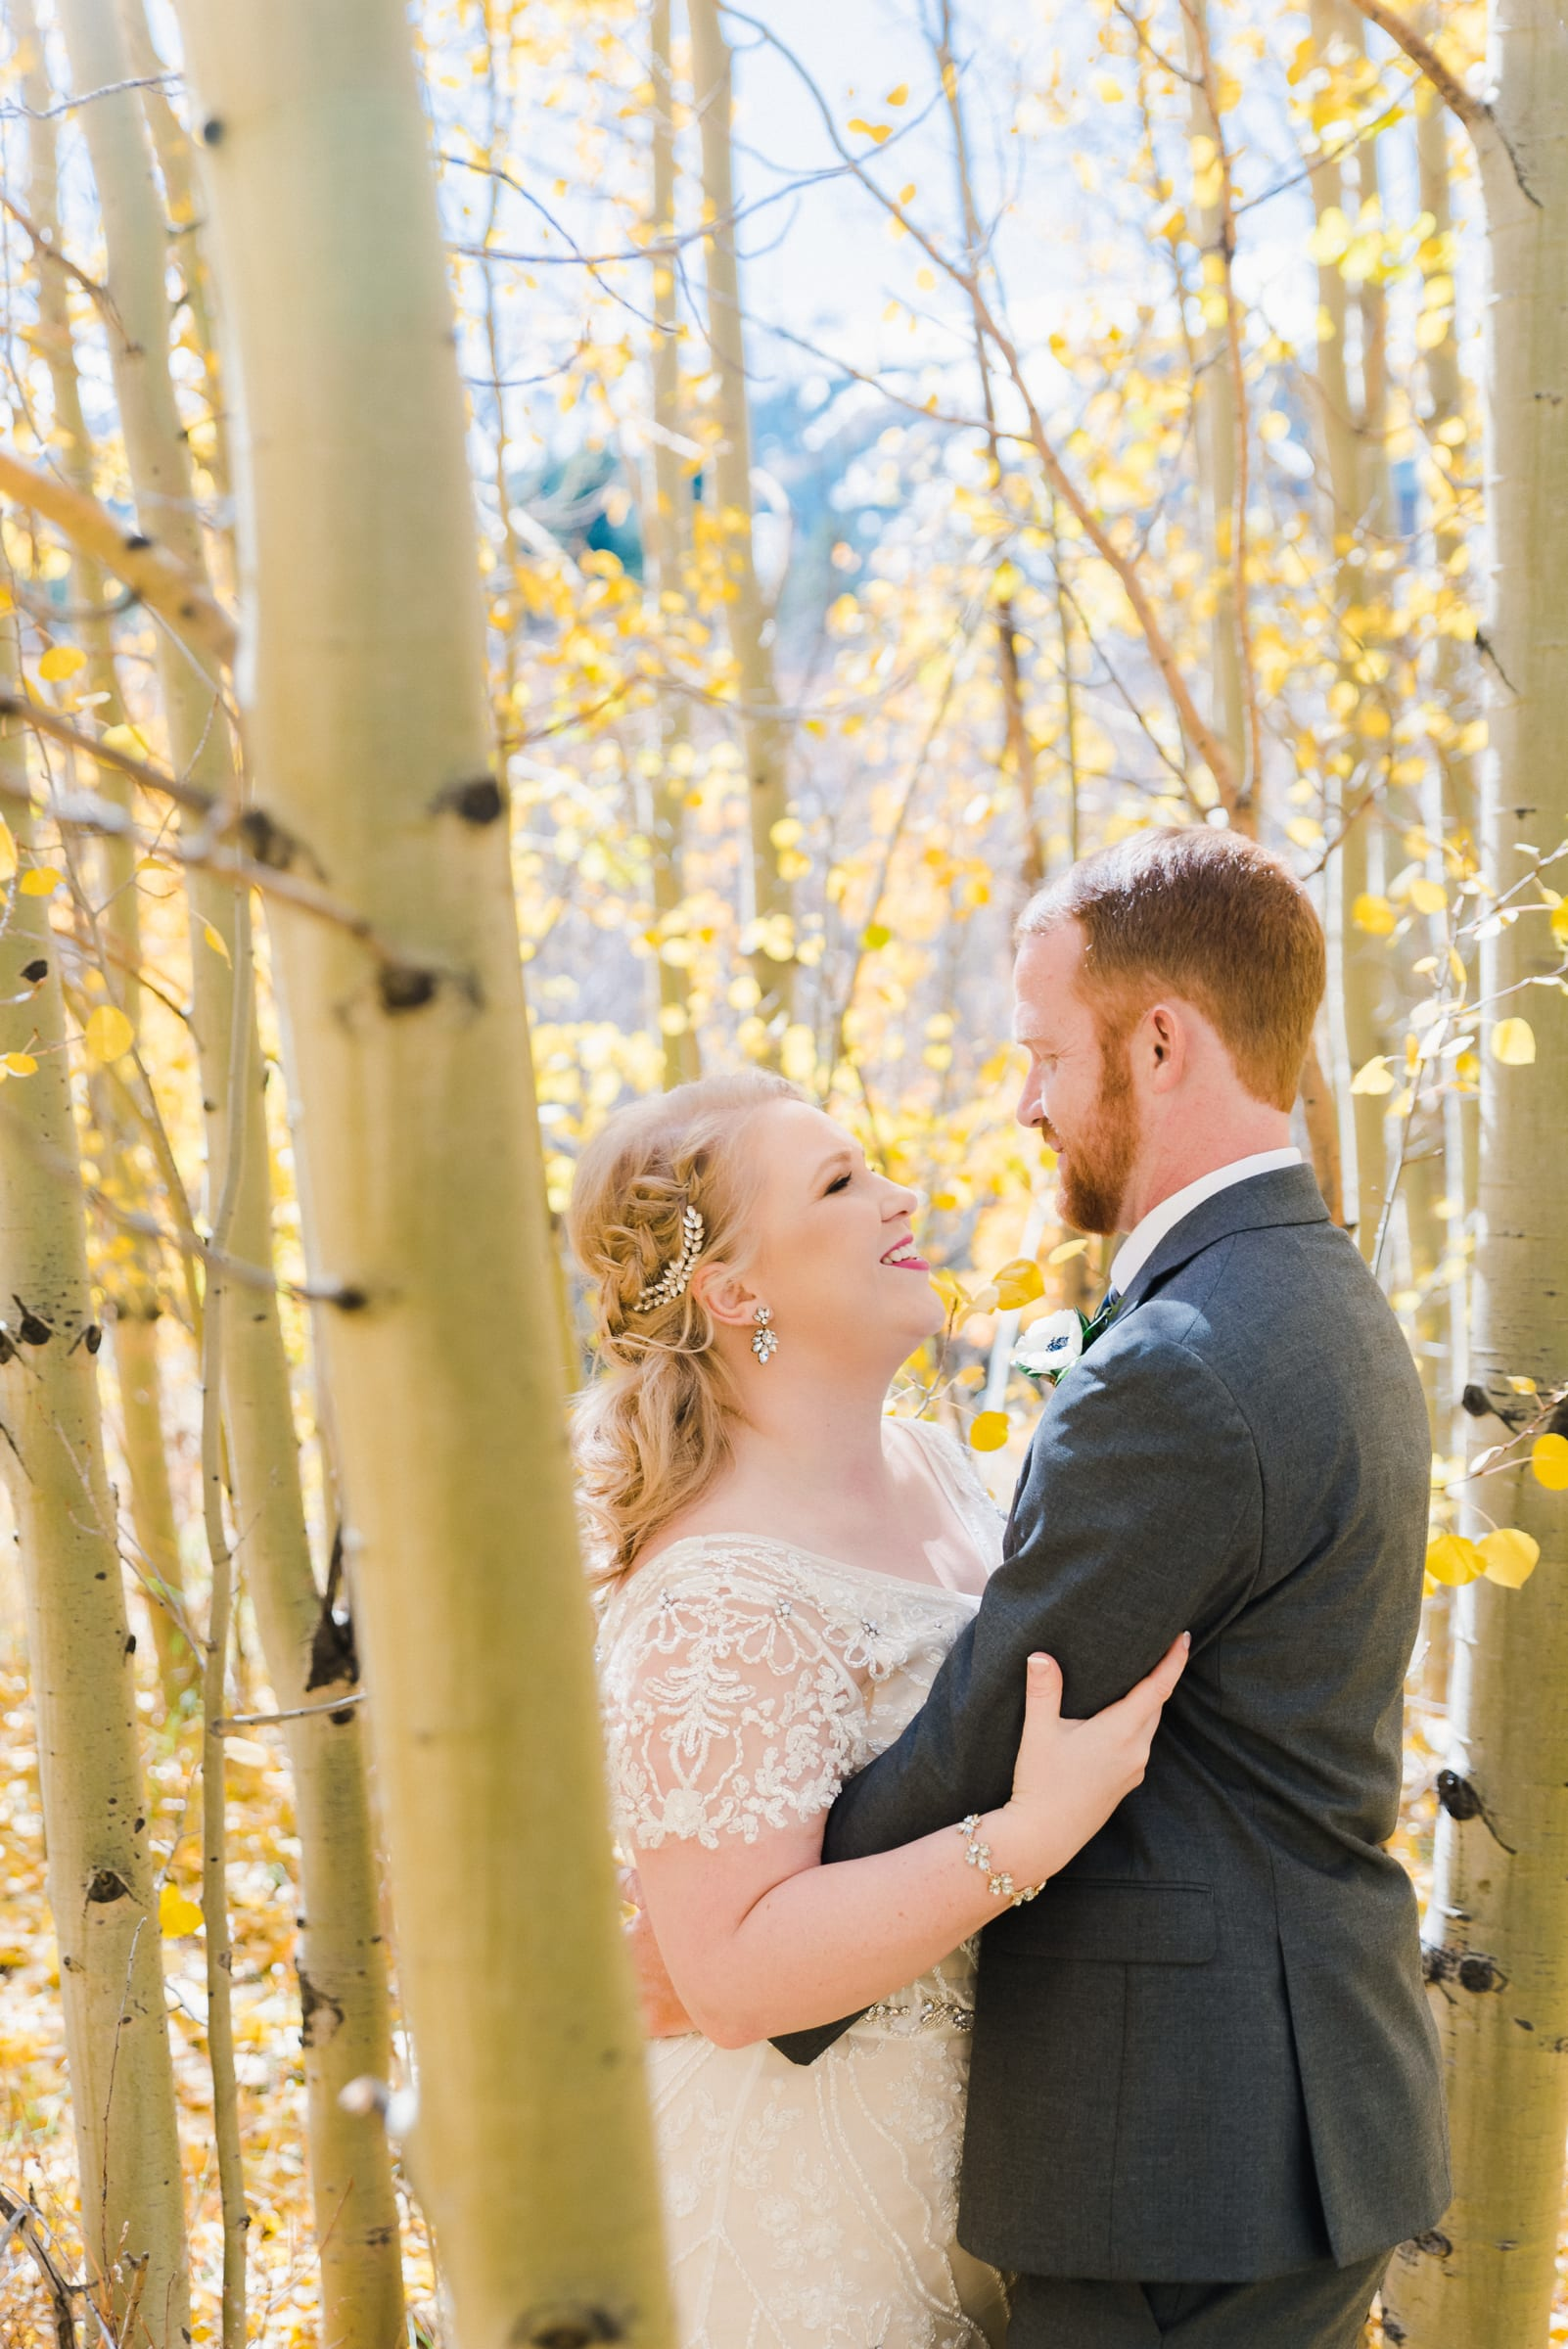 Couple embraces for their wedding in the Colorado Fall | Josie V Photography